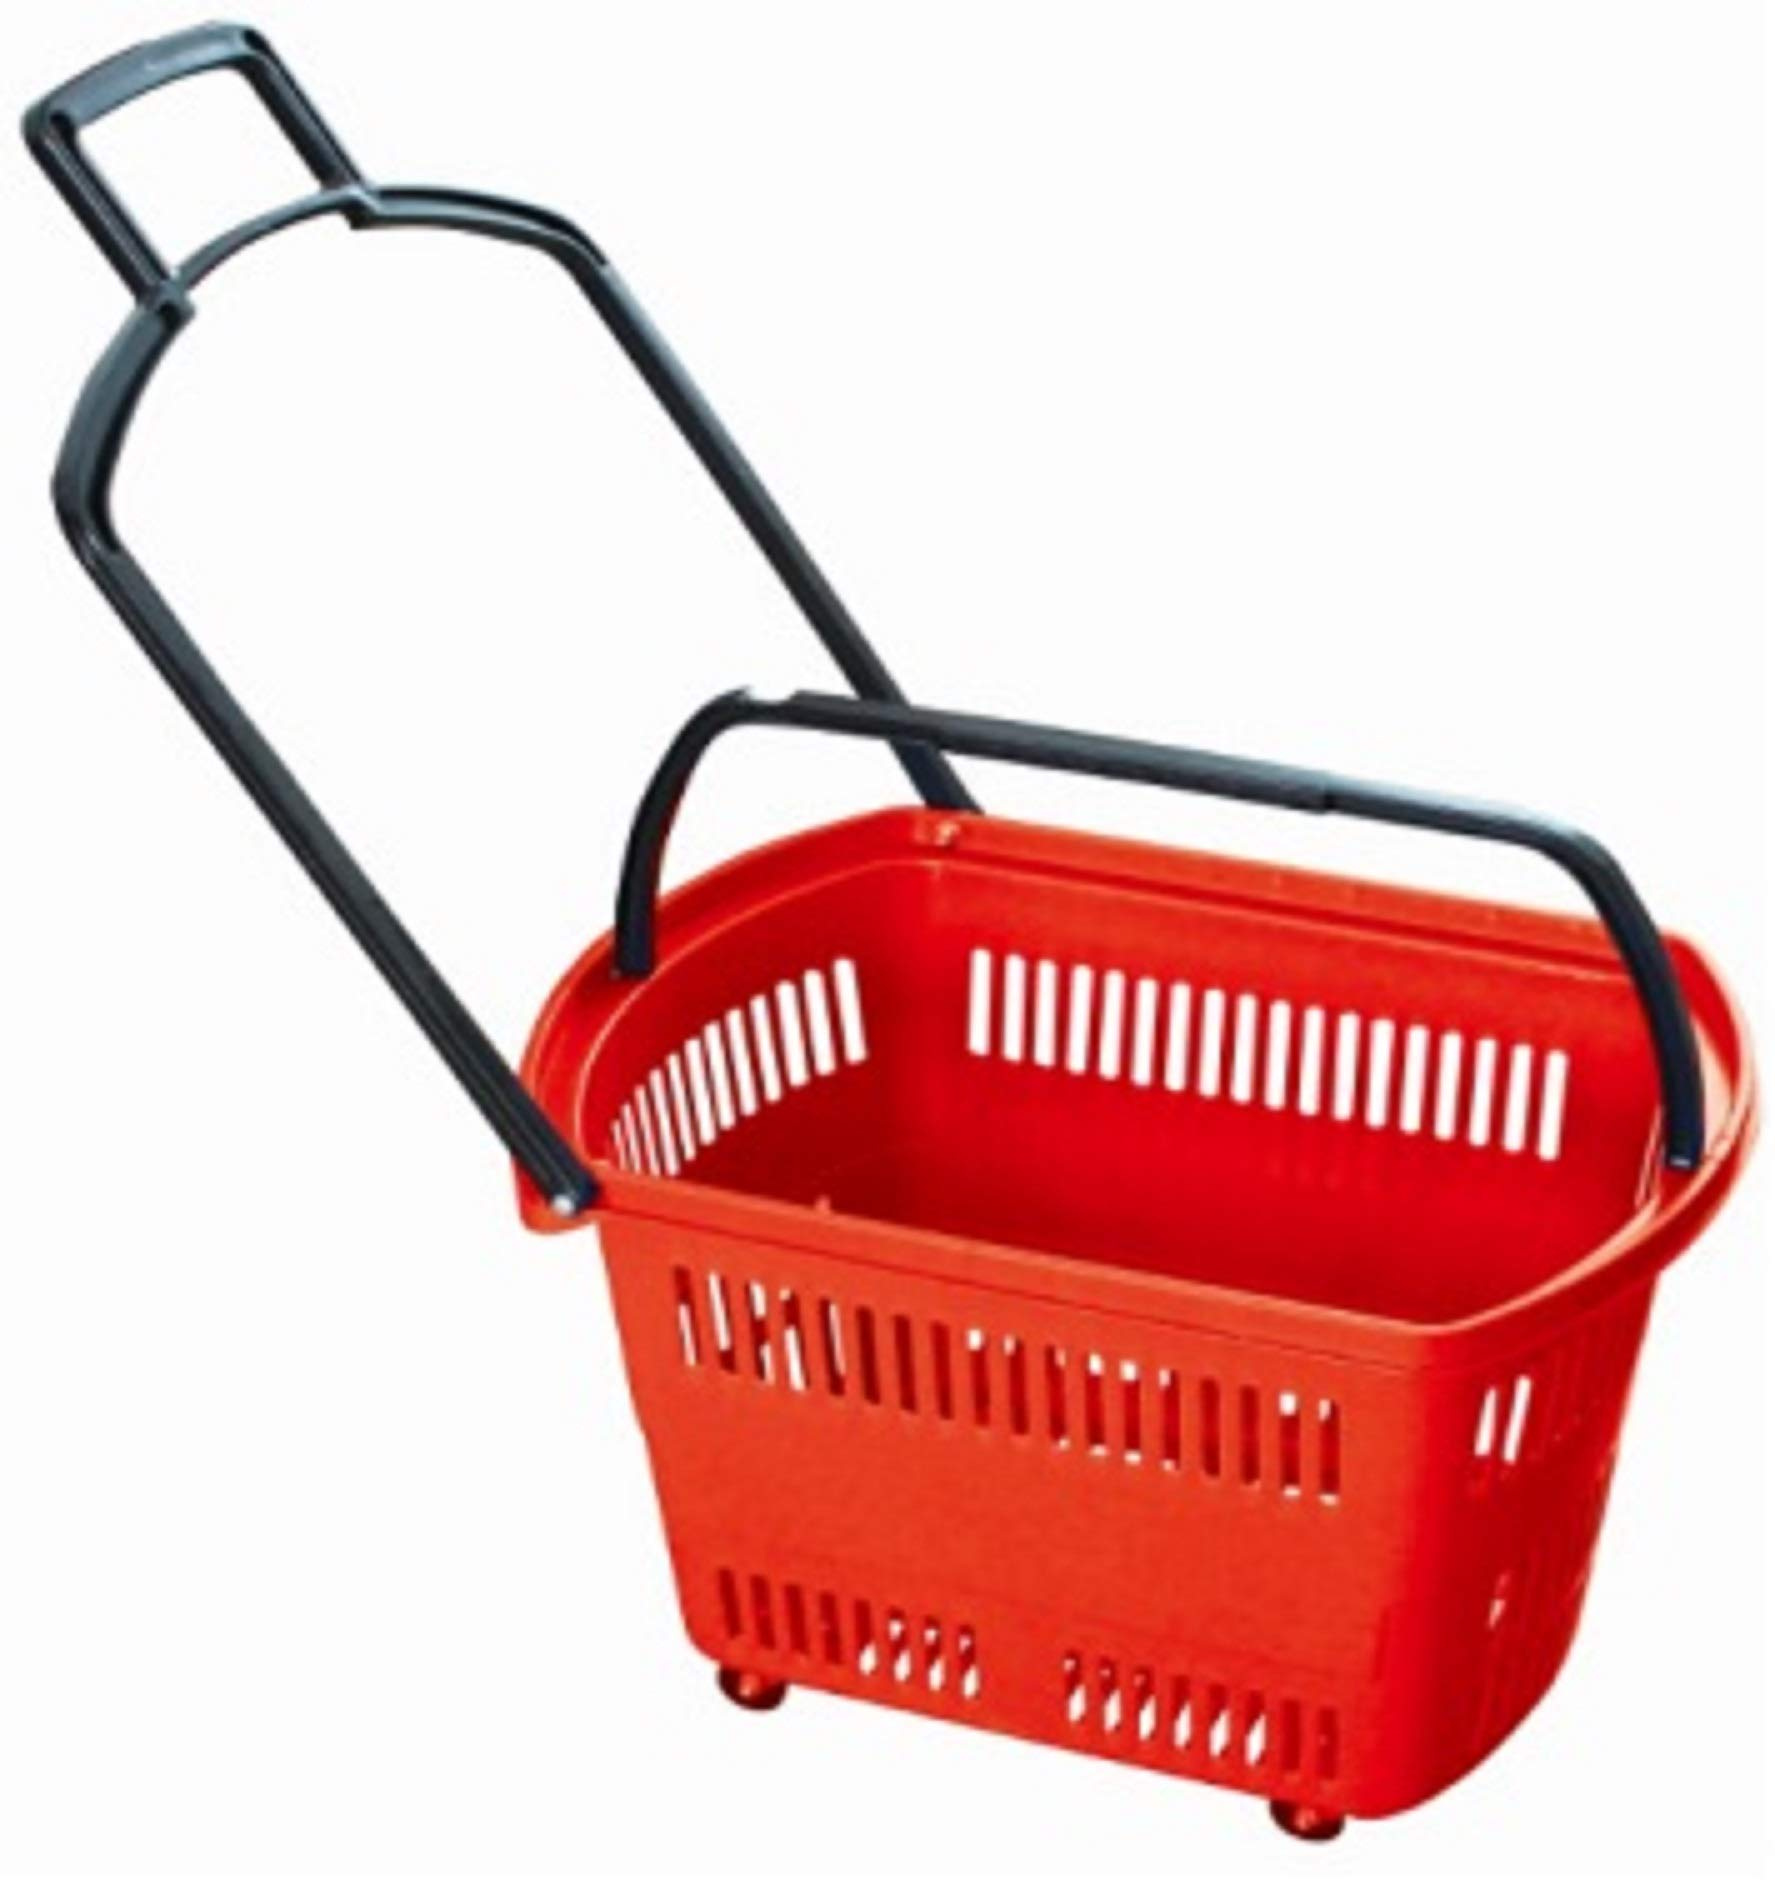 Grocery Shopping Carts - Retail Grocery Baskets w/Swivel Wheels, Pull-Along Handle + Fold-up Handles for Easy Lifting. Heavy-Duty ABS Plastic (RED, Large 3 Pk.) by Market Fizz (Image #1)